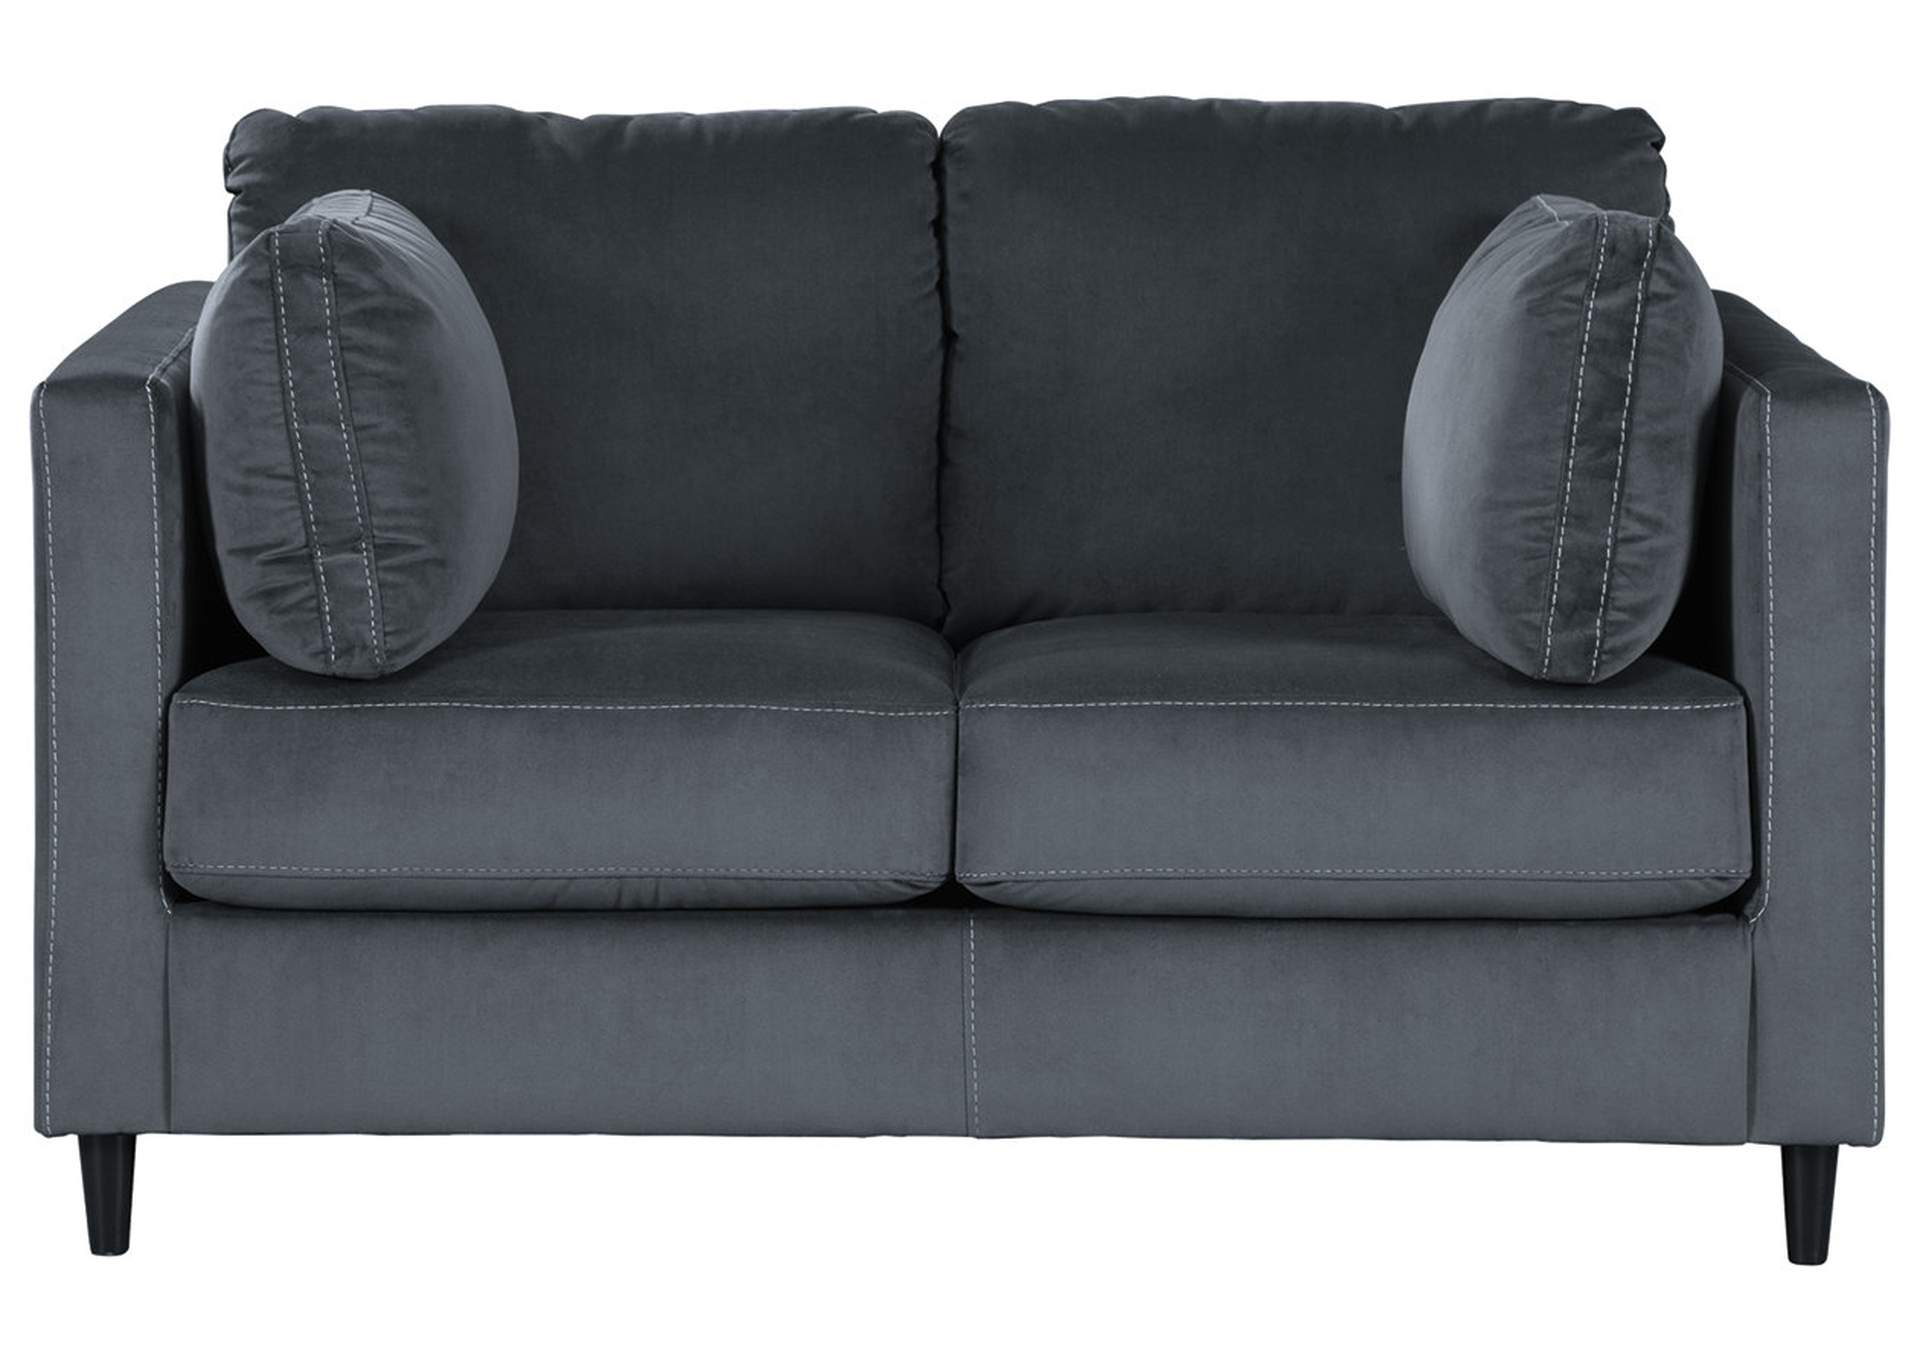 Kennewick Shadow Loveseat,Signature Design By Ashley